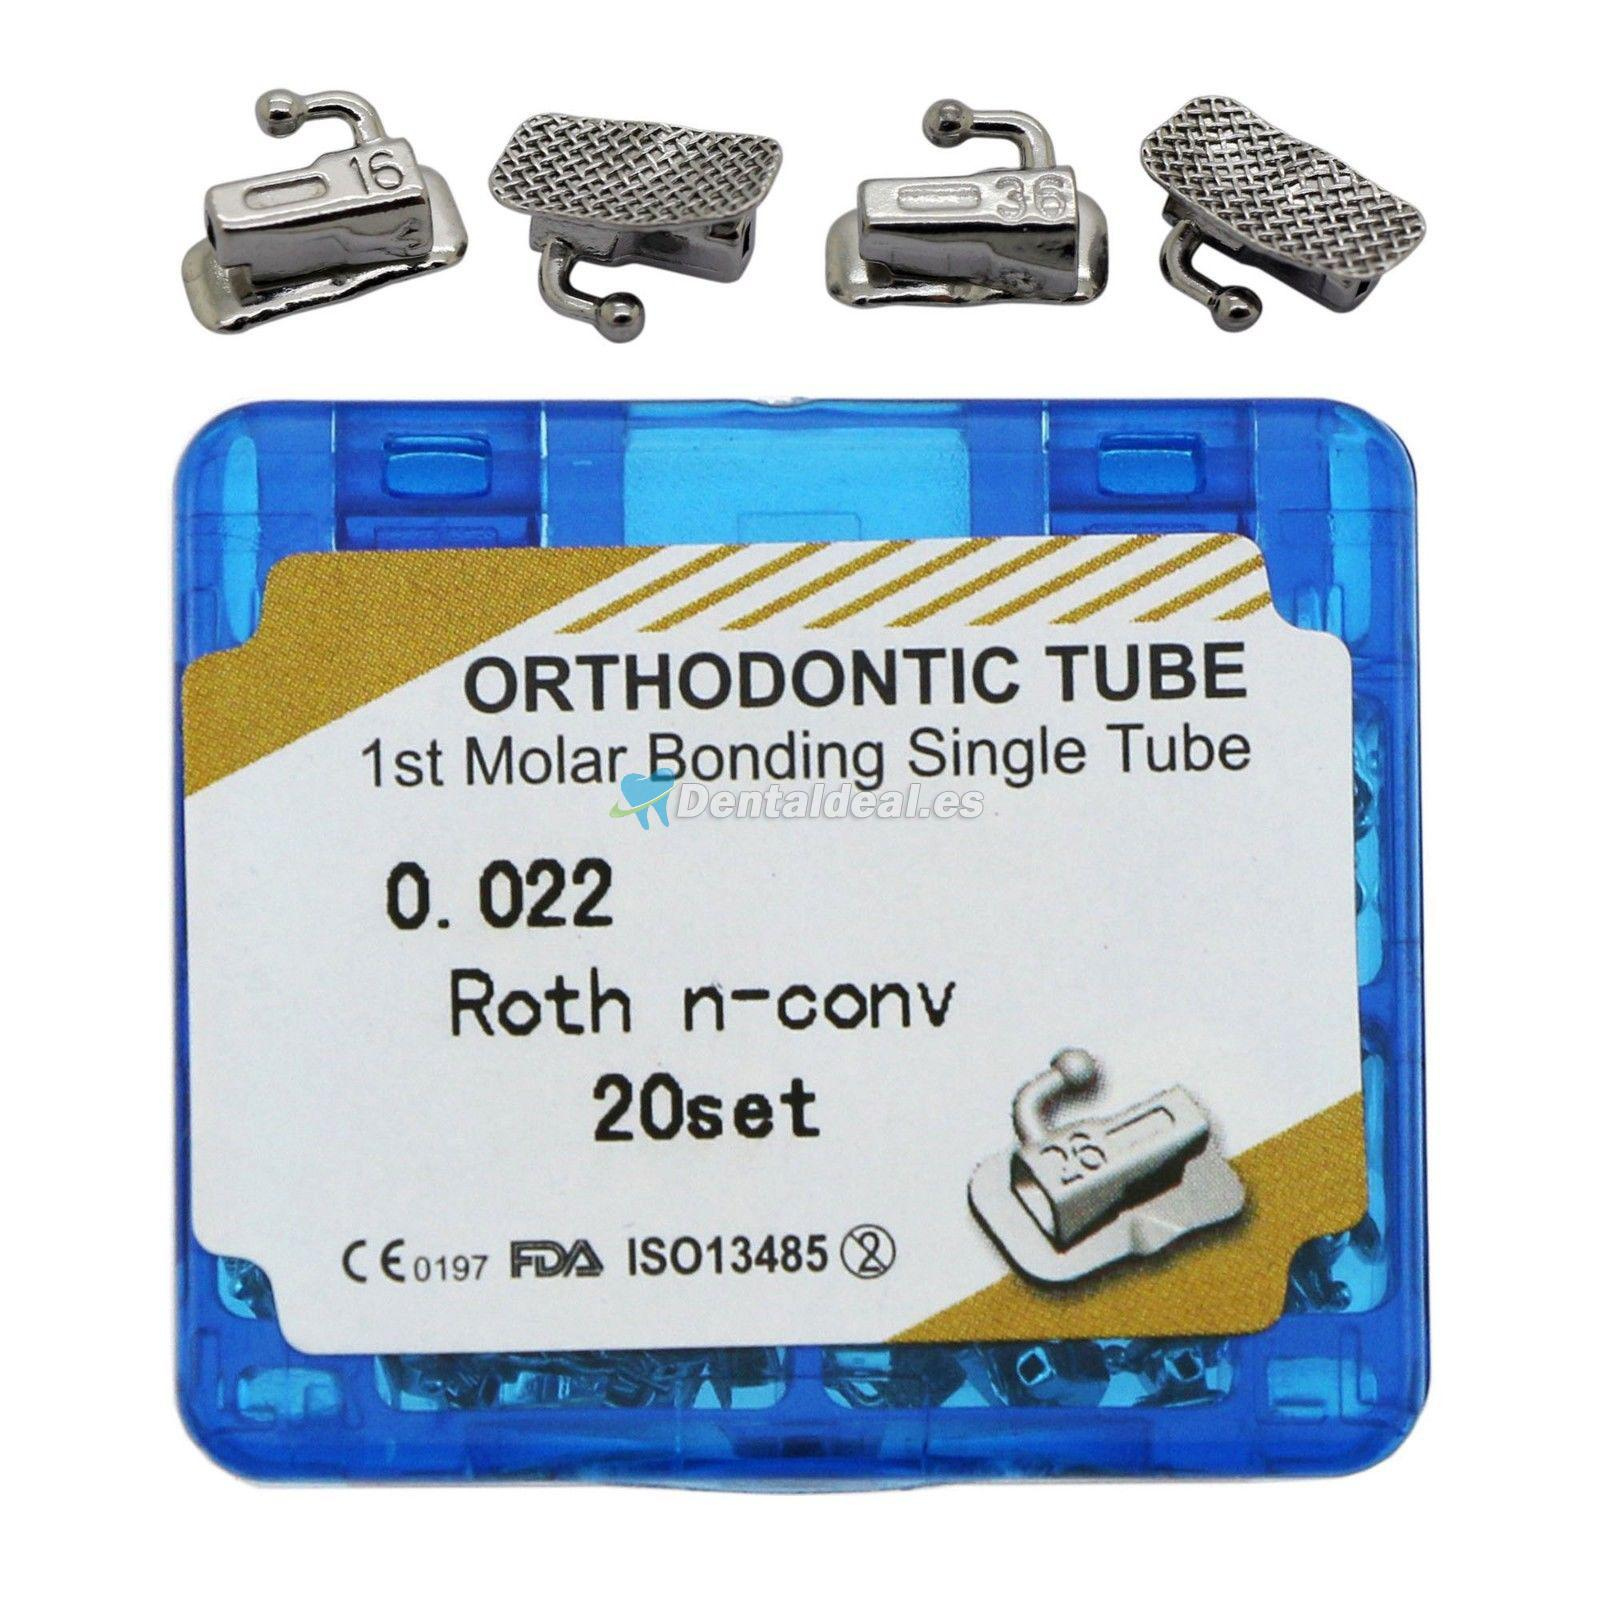 20 Sets Dental Ortodontic Bonding Solo Buccal Tubo 1ra Molar Roth 022 Slot